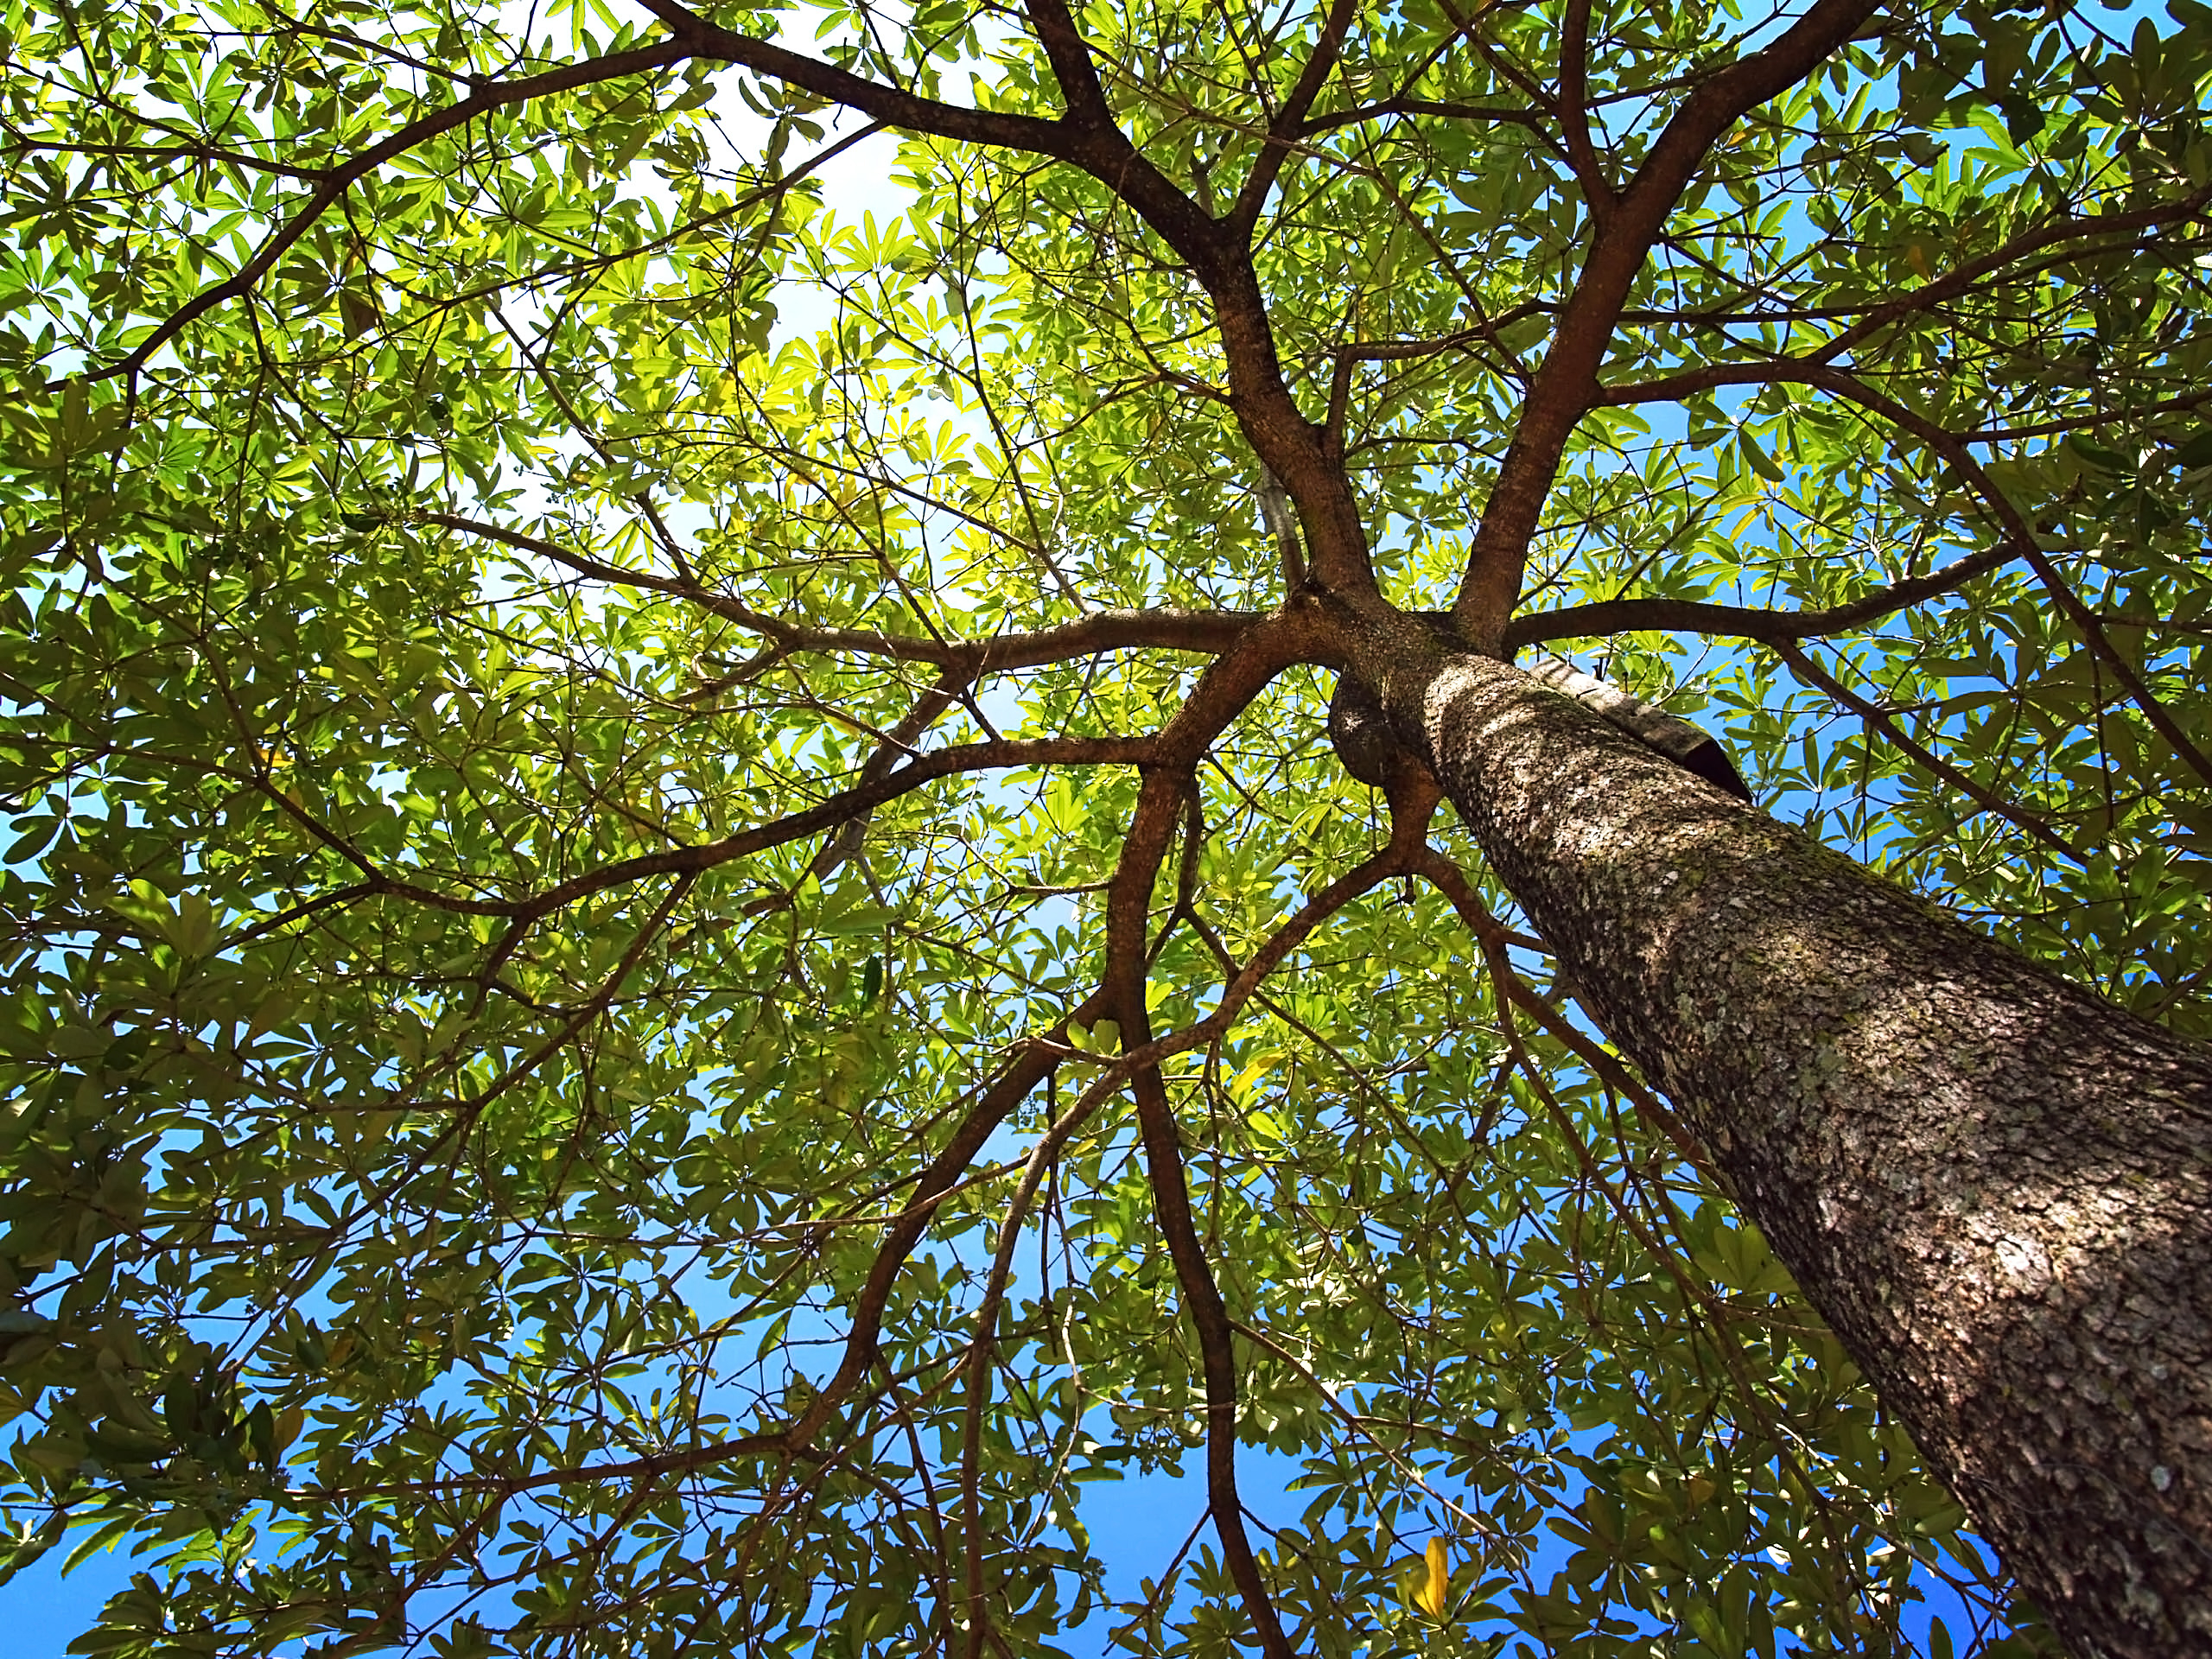 View through the canopy of a tree, green leaves and a blue sunny sky beyond